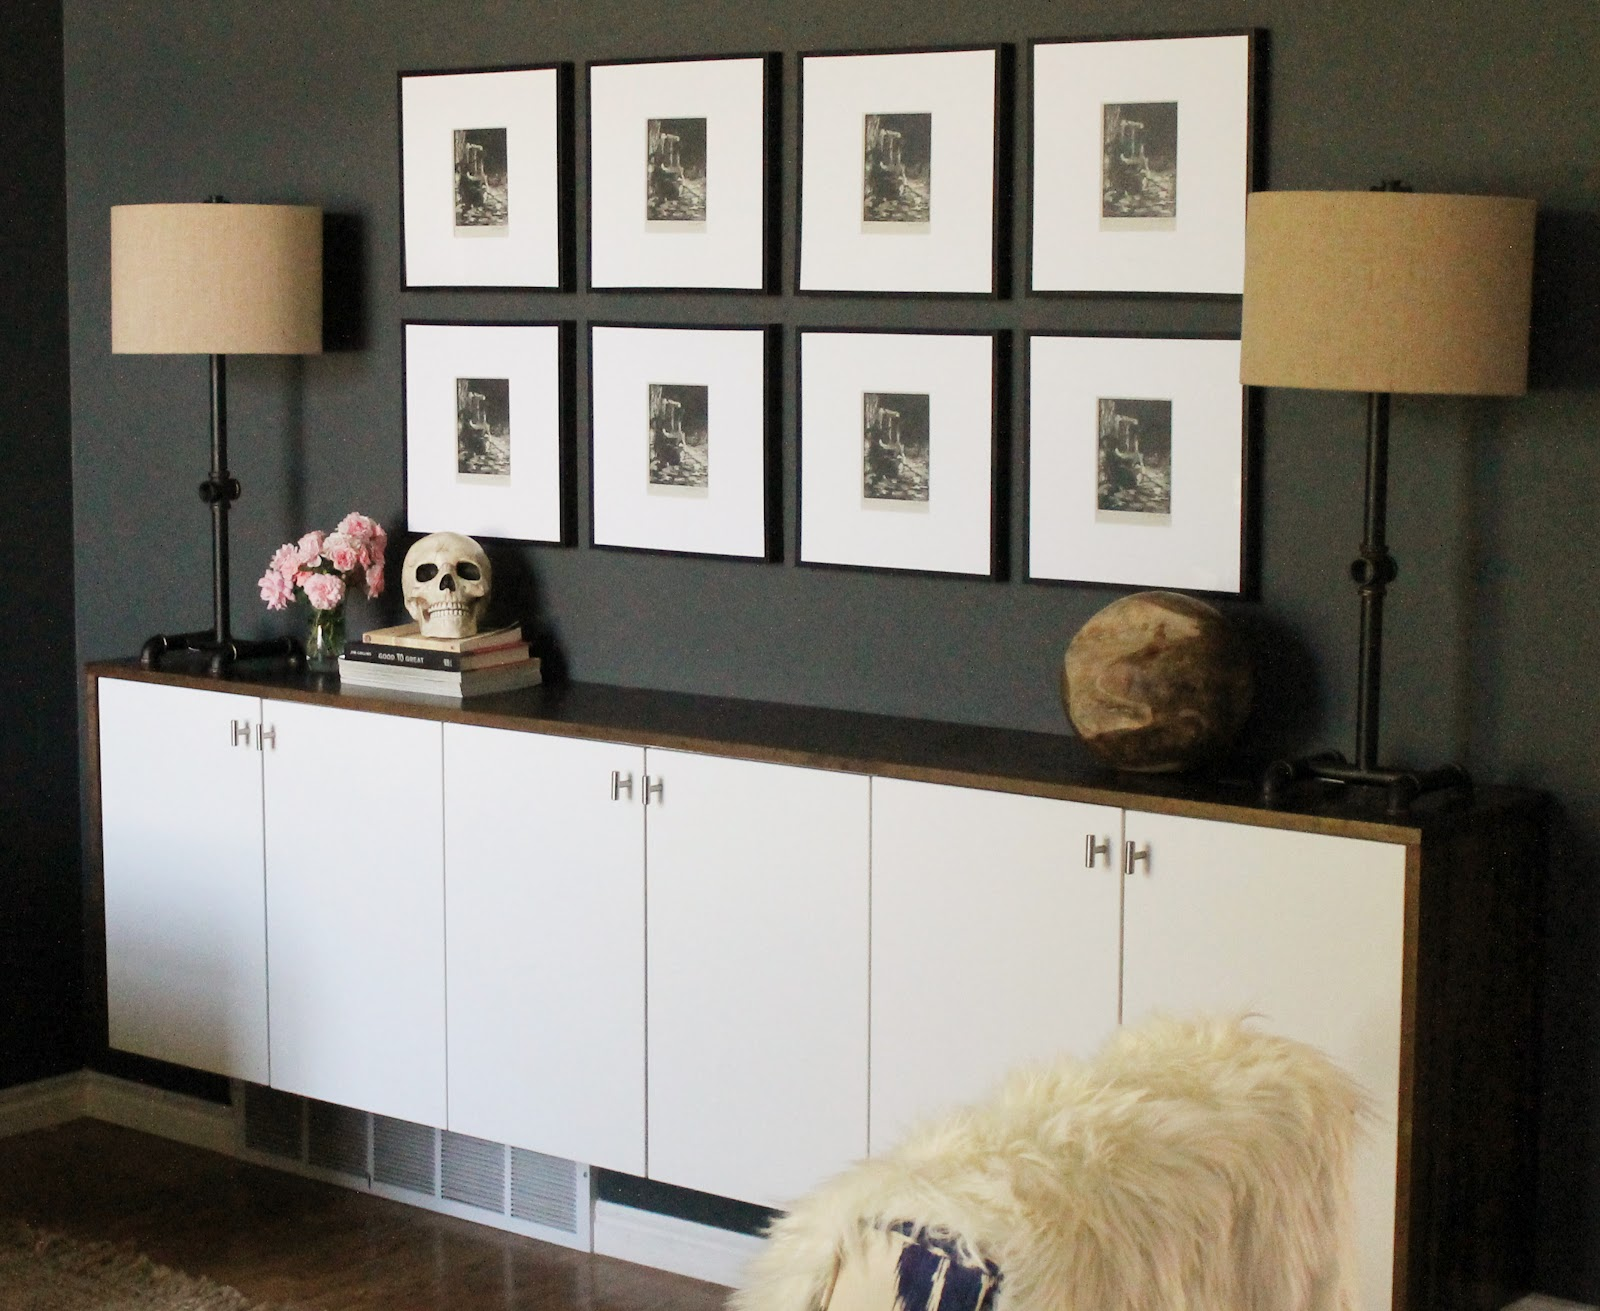 Our Styled Credenza: Industrial Chic Meets Dia De Los Muertos.